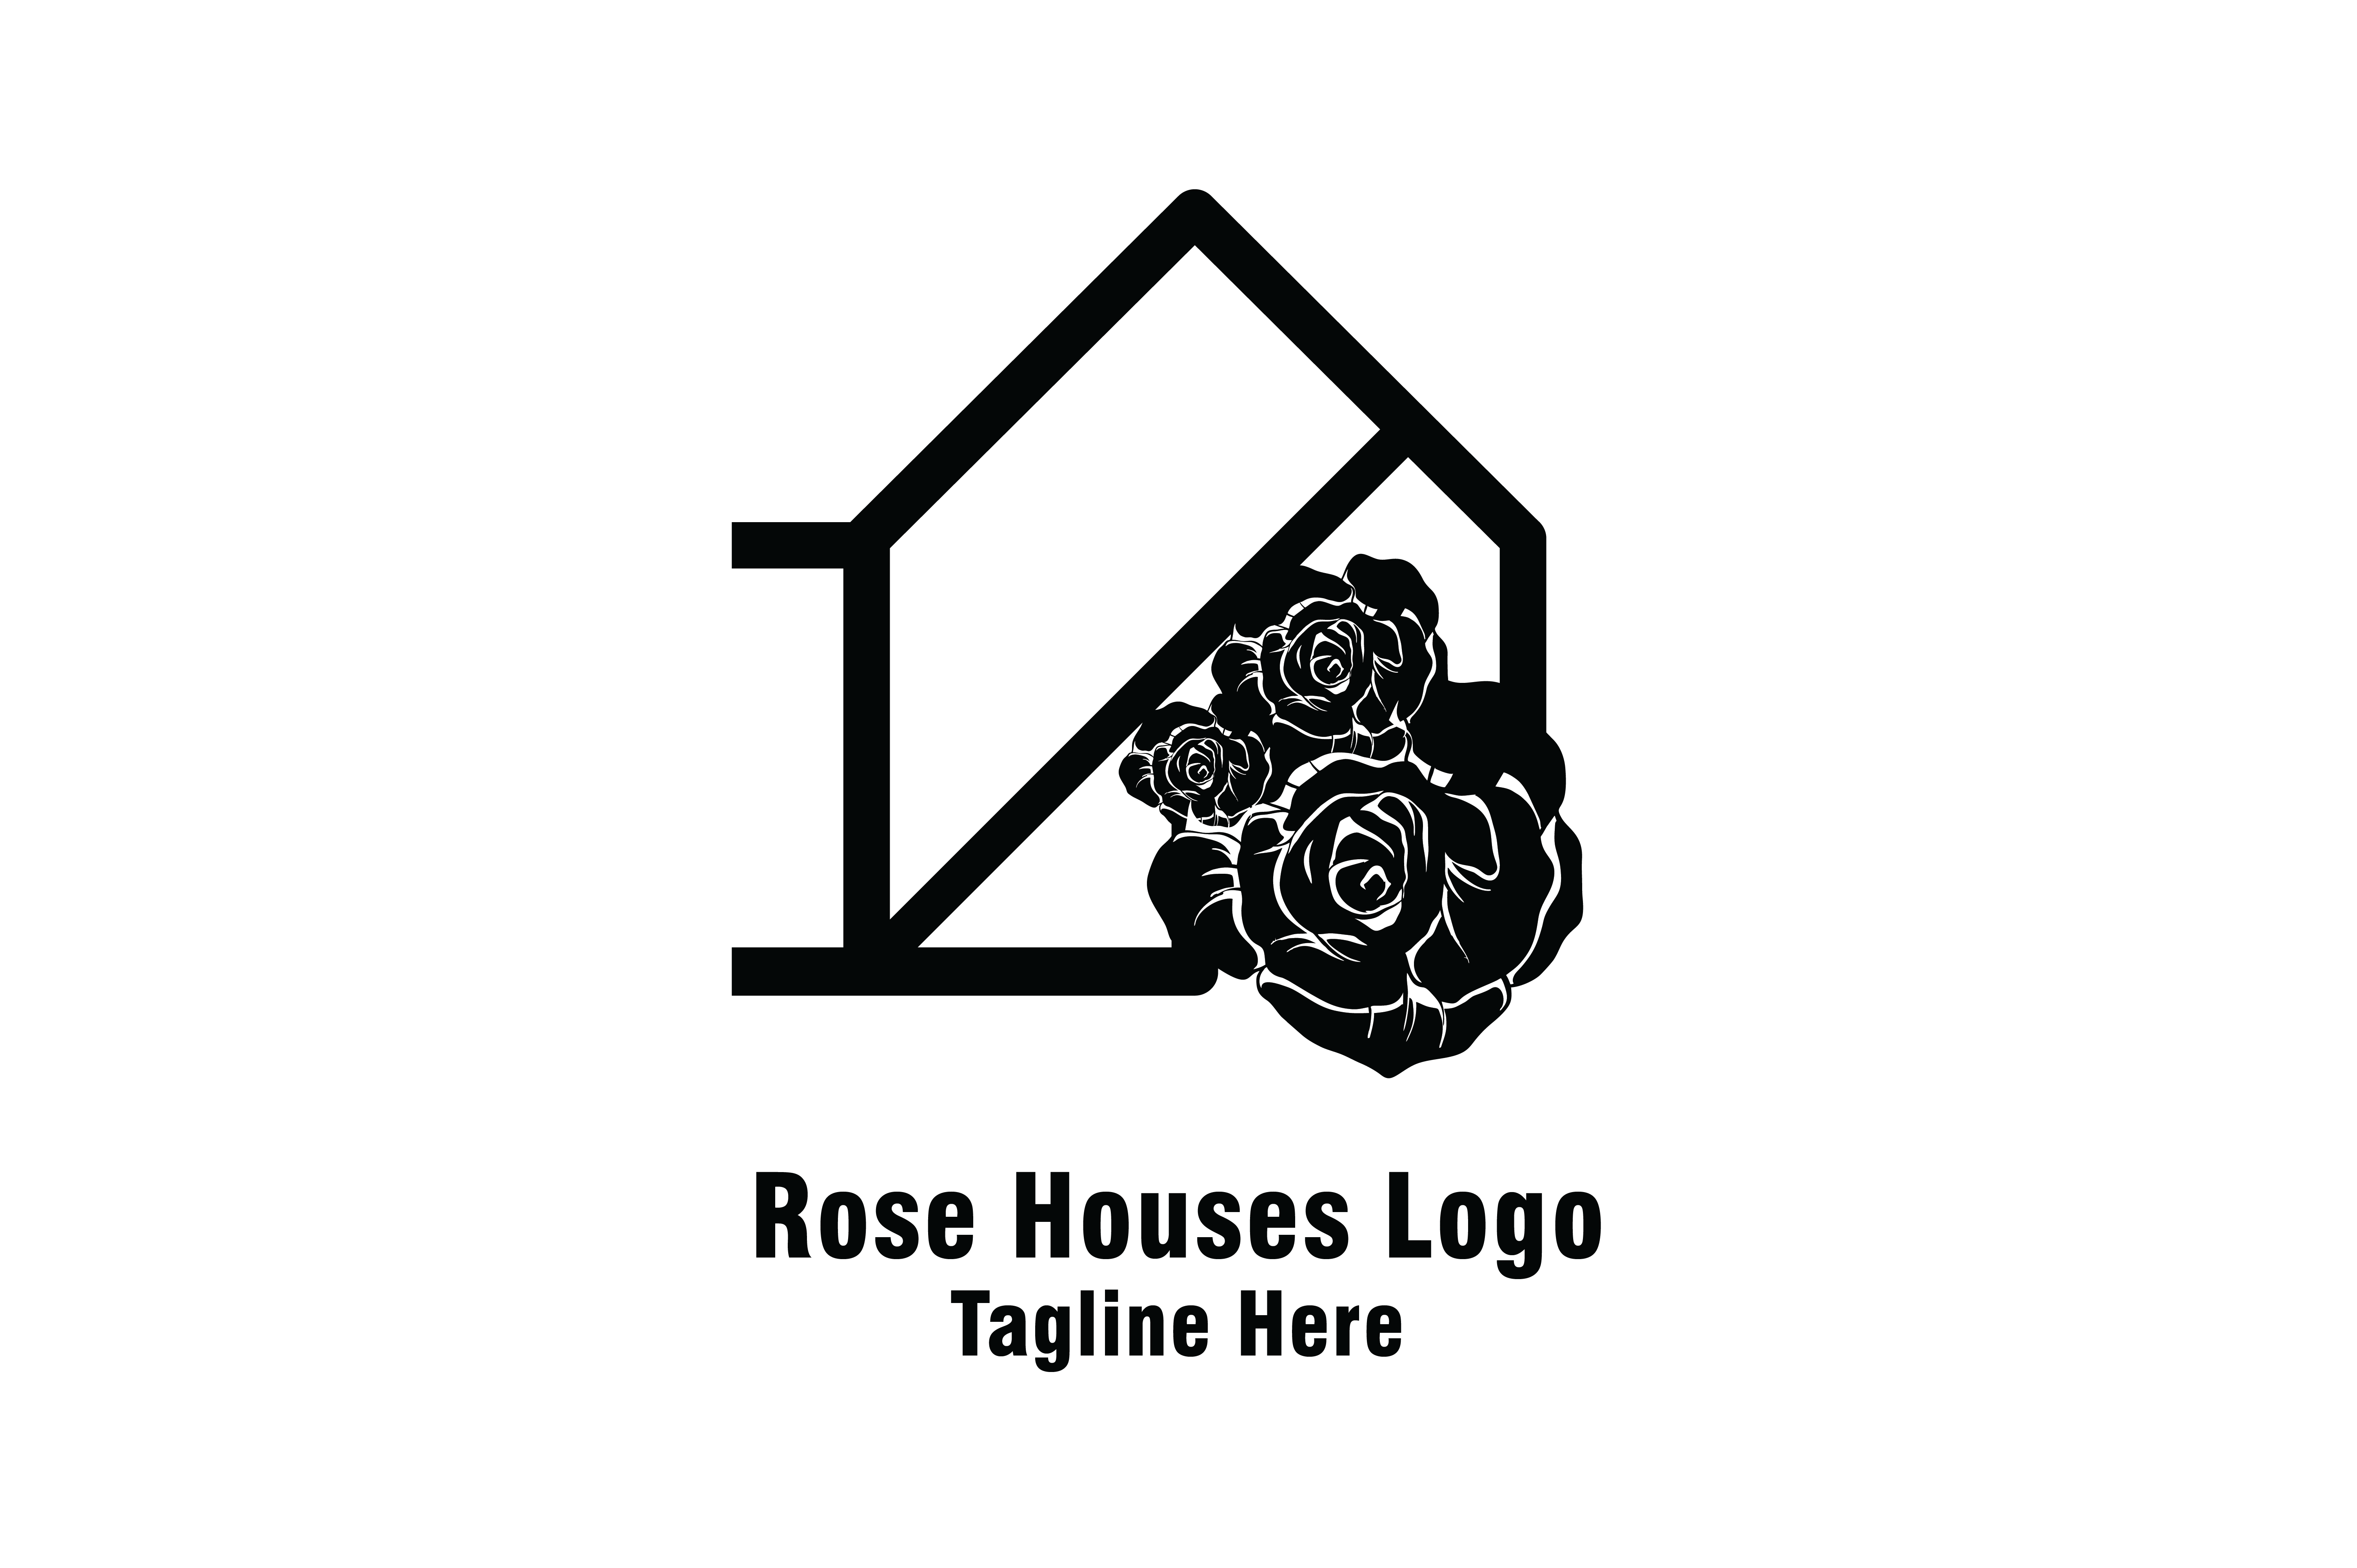 Download Free Rose Houses Rosse Home Logo Vector Graphic By Yuhana Purwanti for Cricut Explore, Silhouette and other cutting machines.